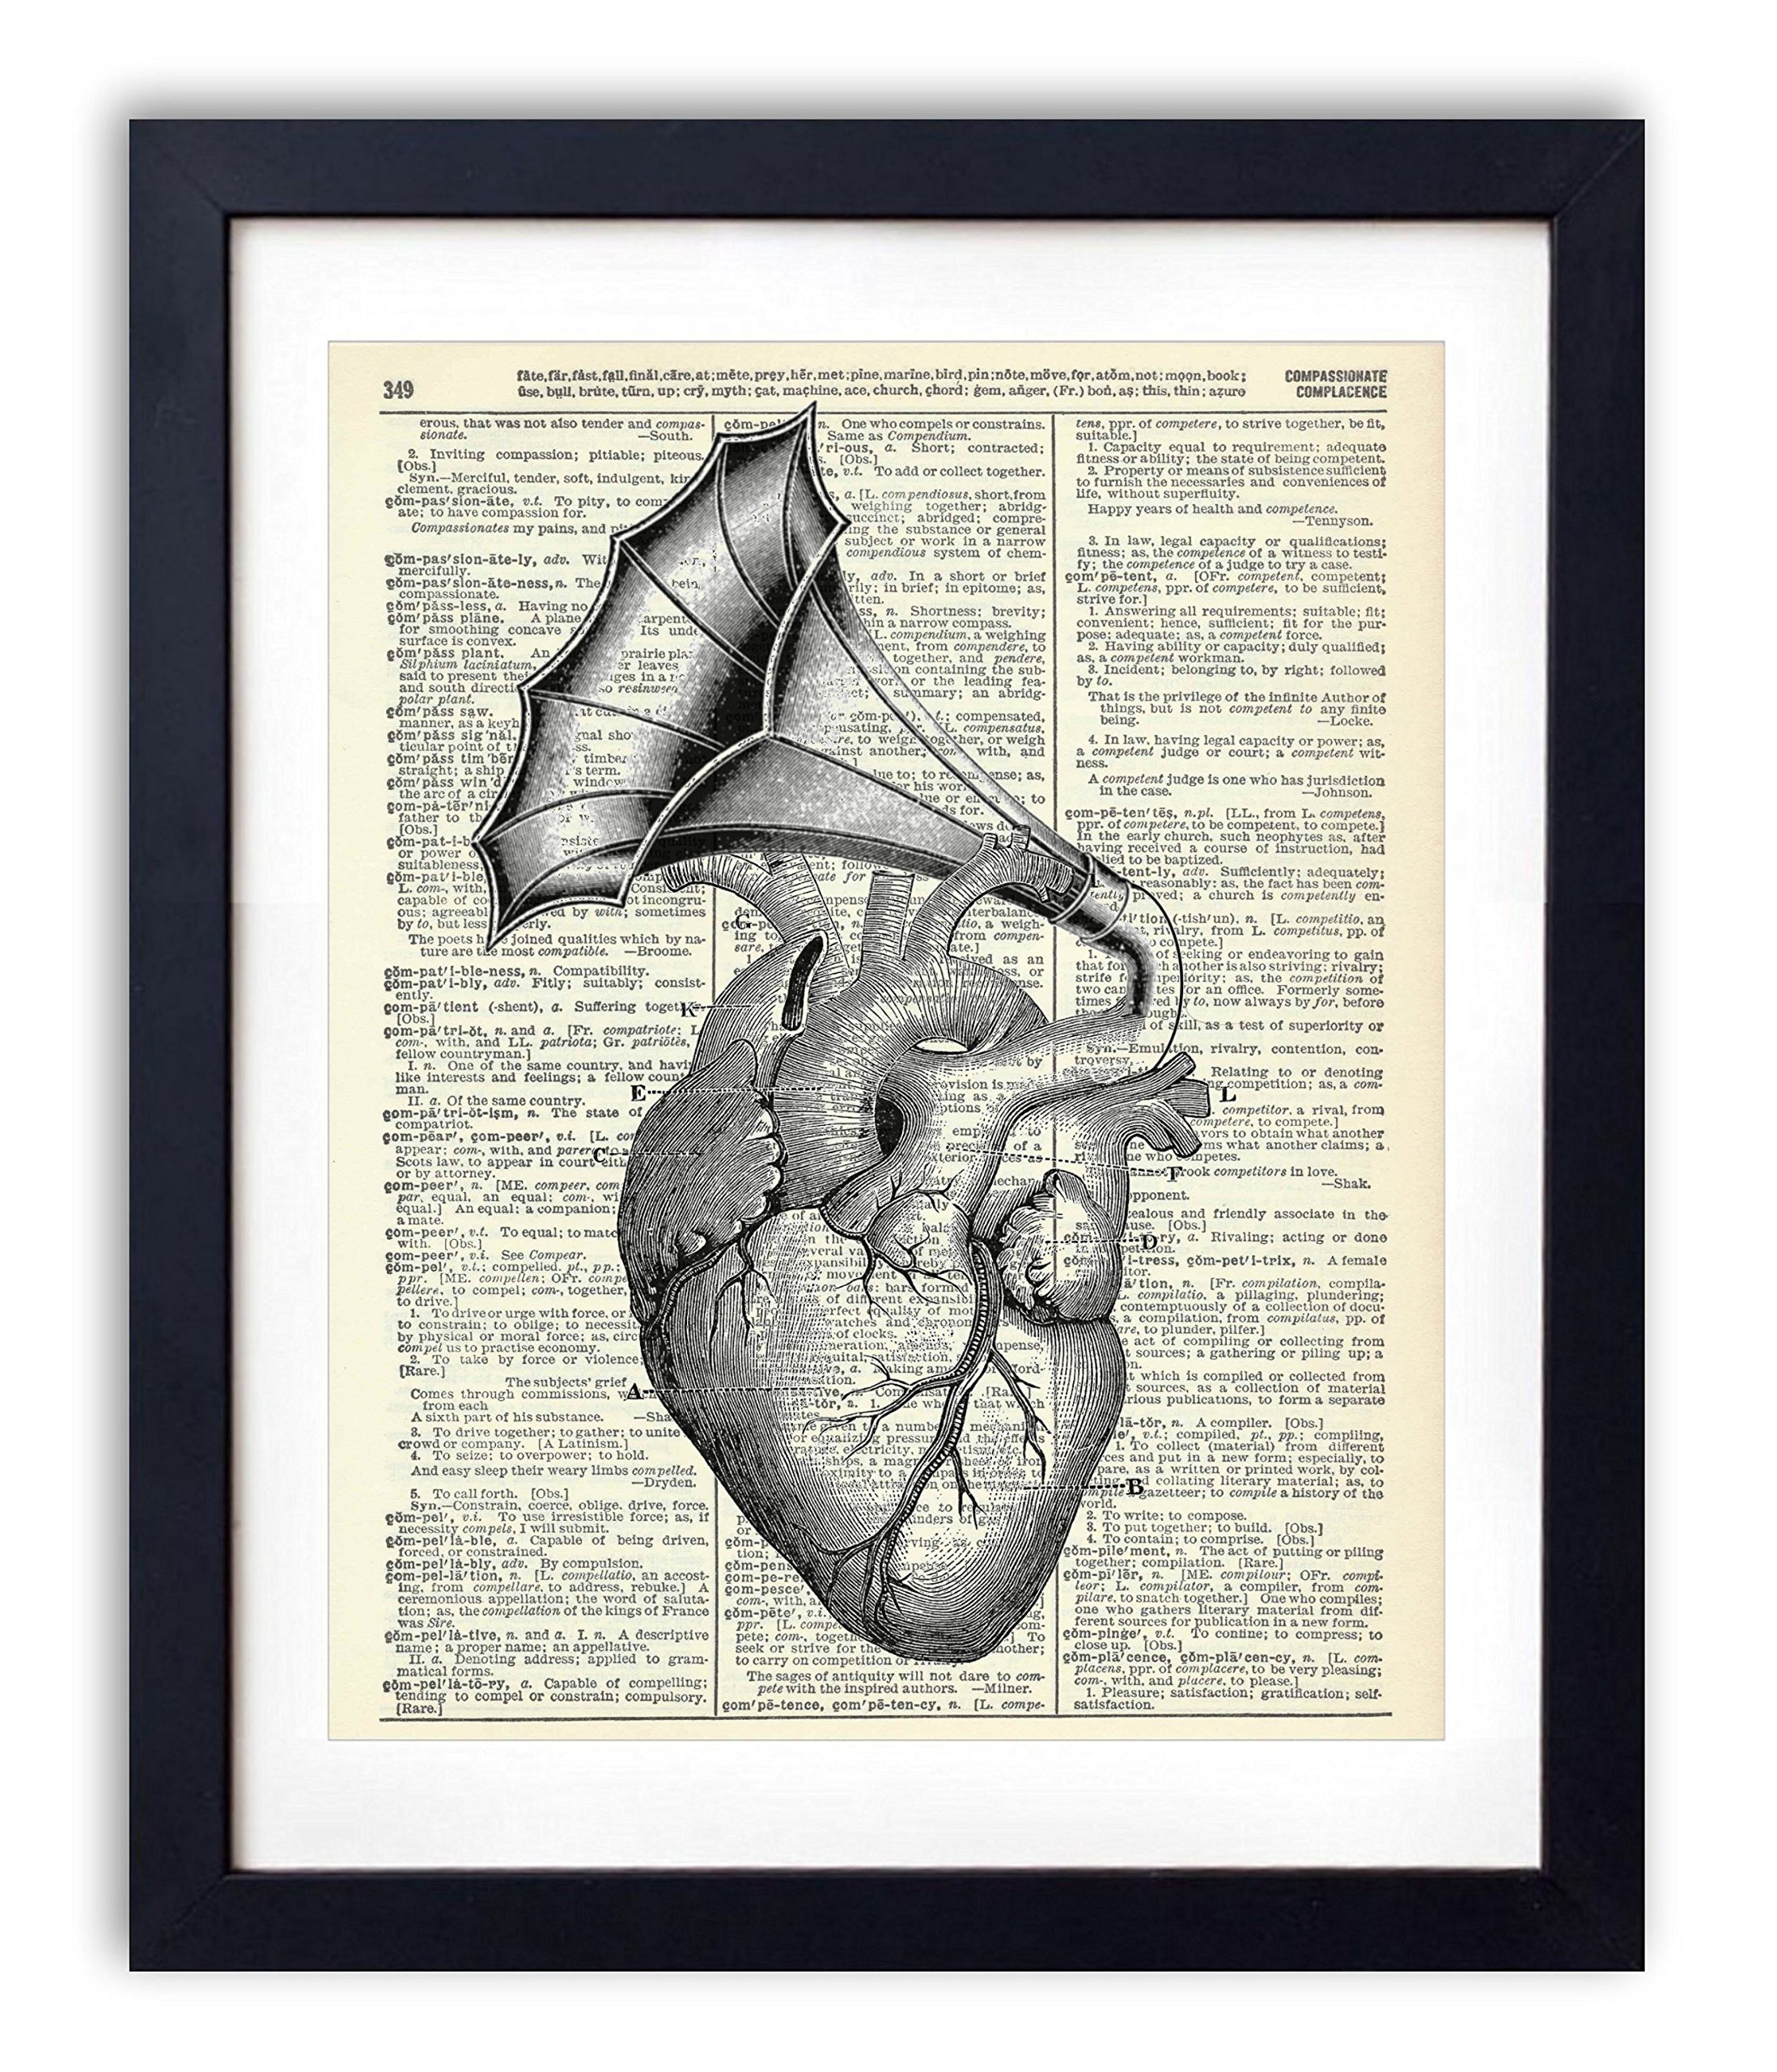 Heart With Vintage Horn Illustration Upcycled Dictionary Art Print 8x10 by Vintage Book Art Co.